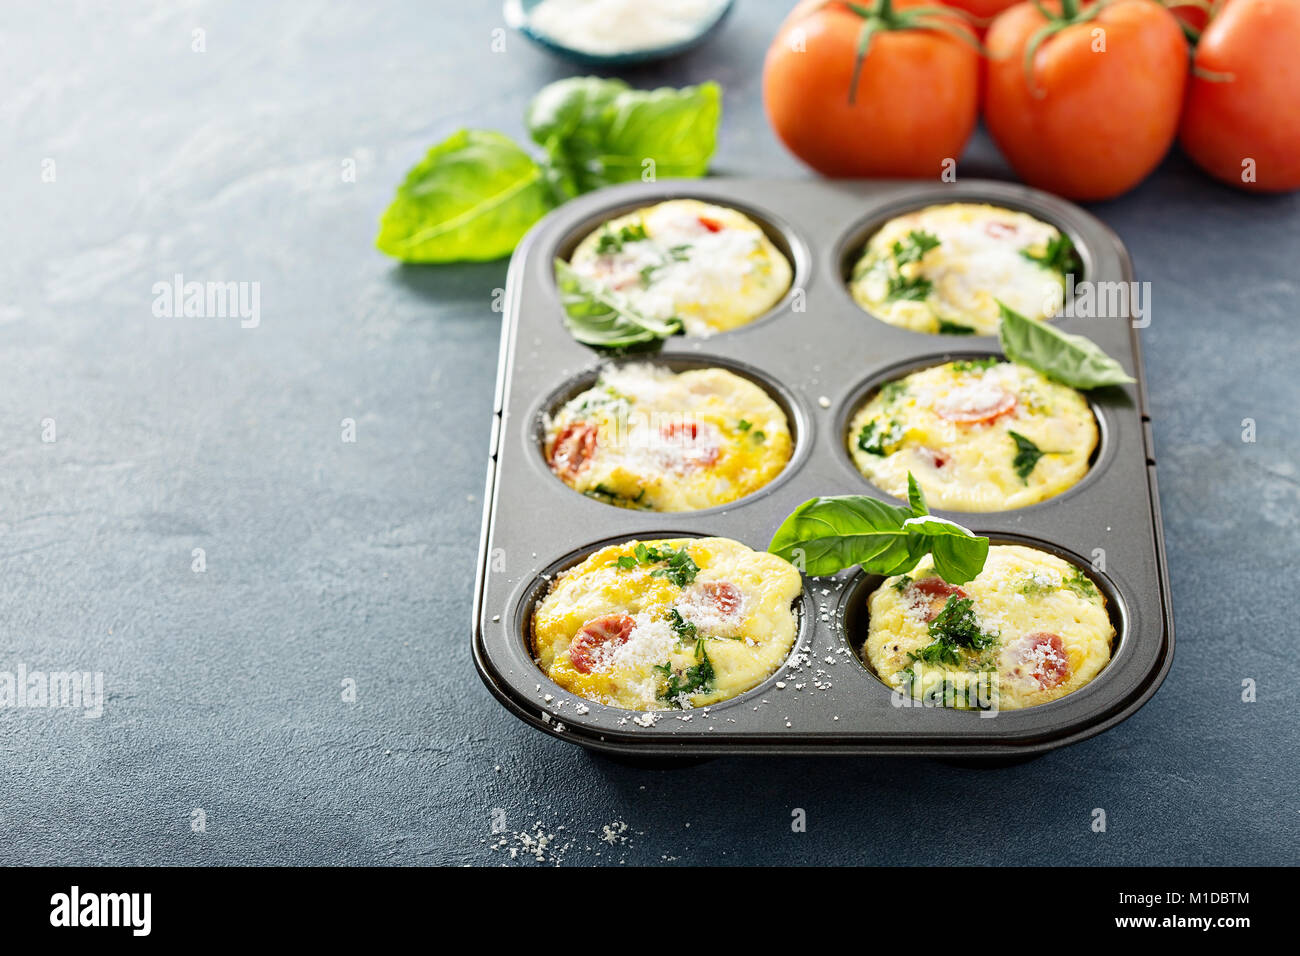 Healthy egg muffins, mini frittatas with tomatoes - Stock Image